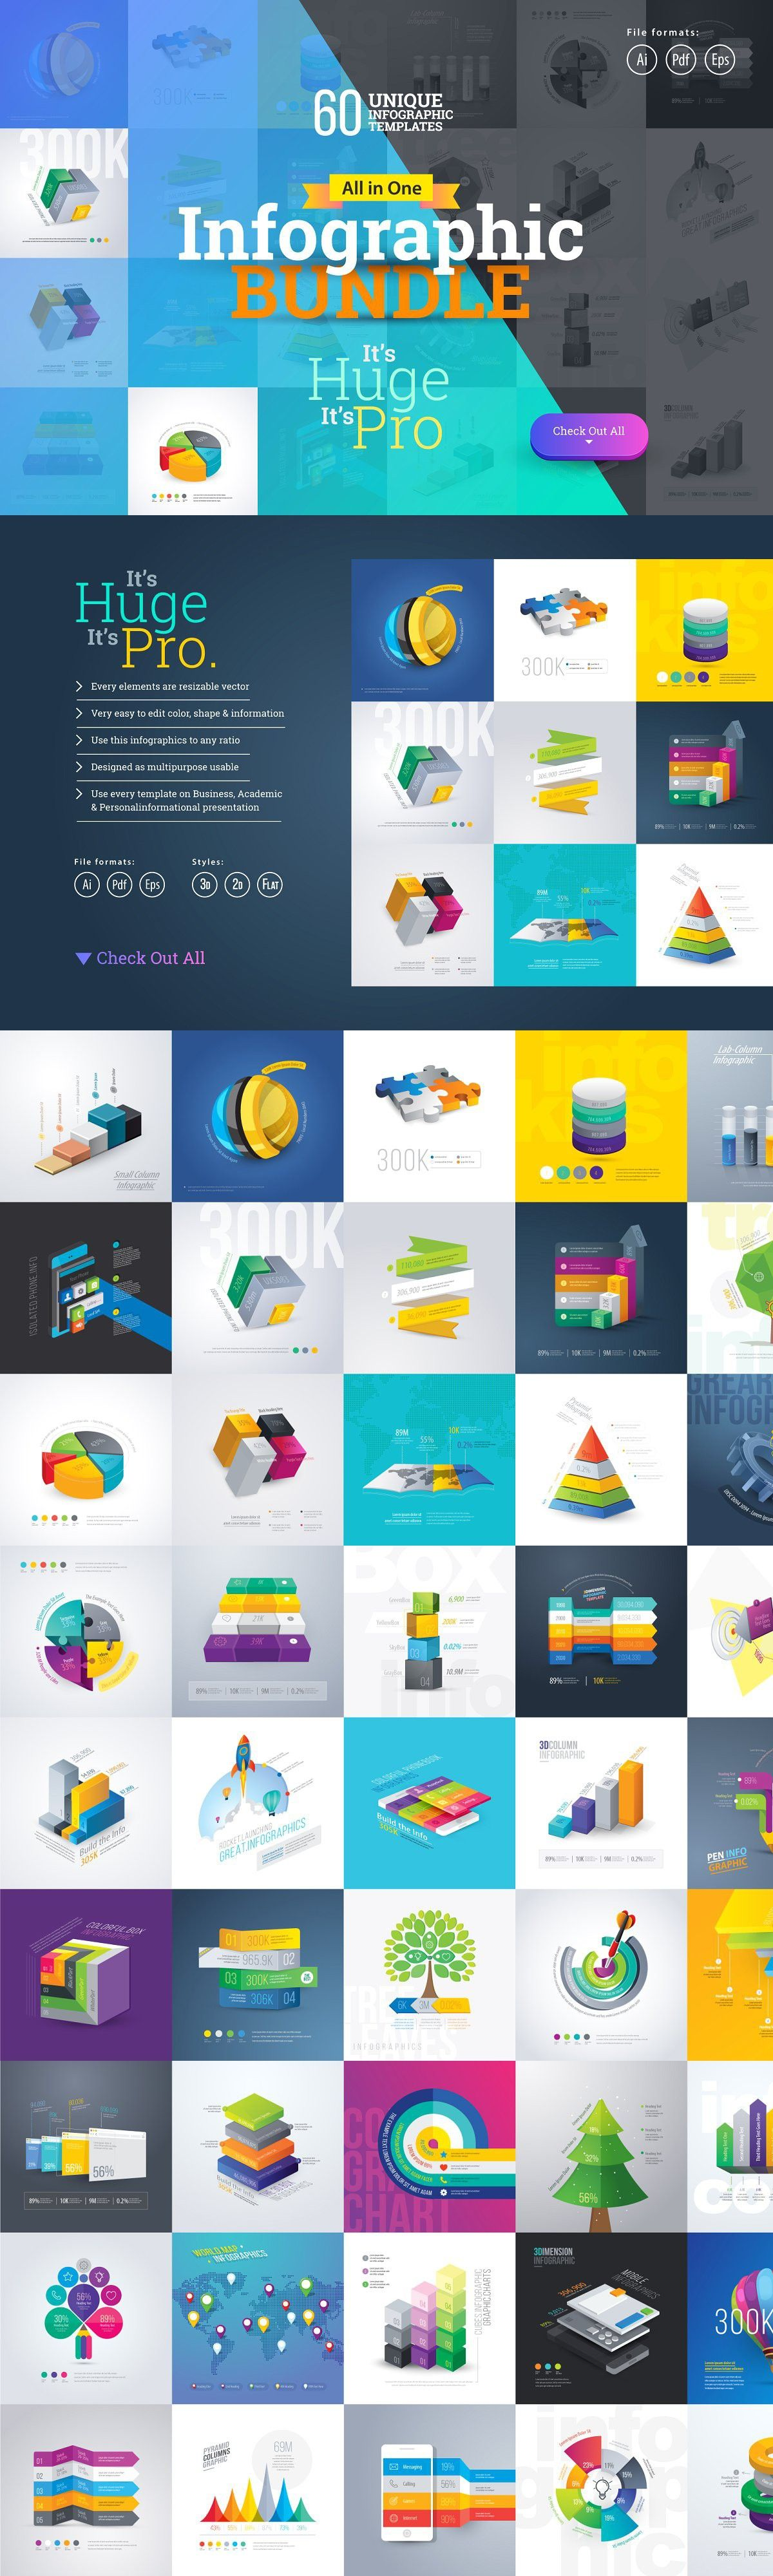 Download Most Use Essential Infographic Pack in 2020 | Infographic ...